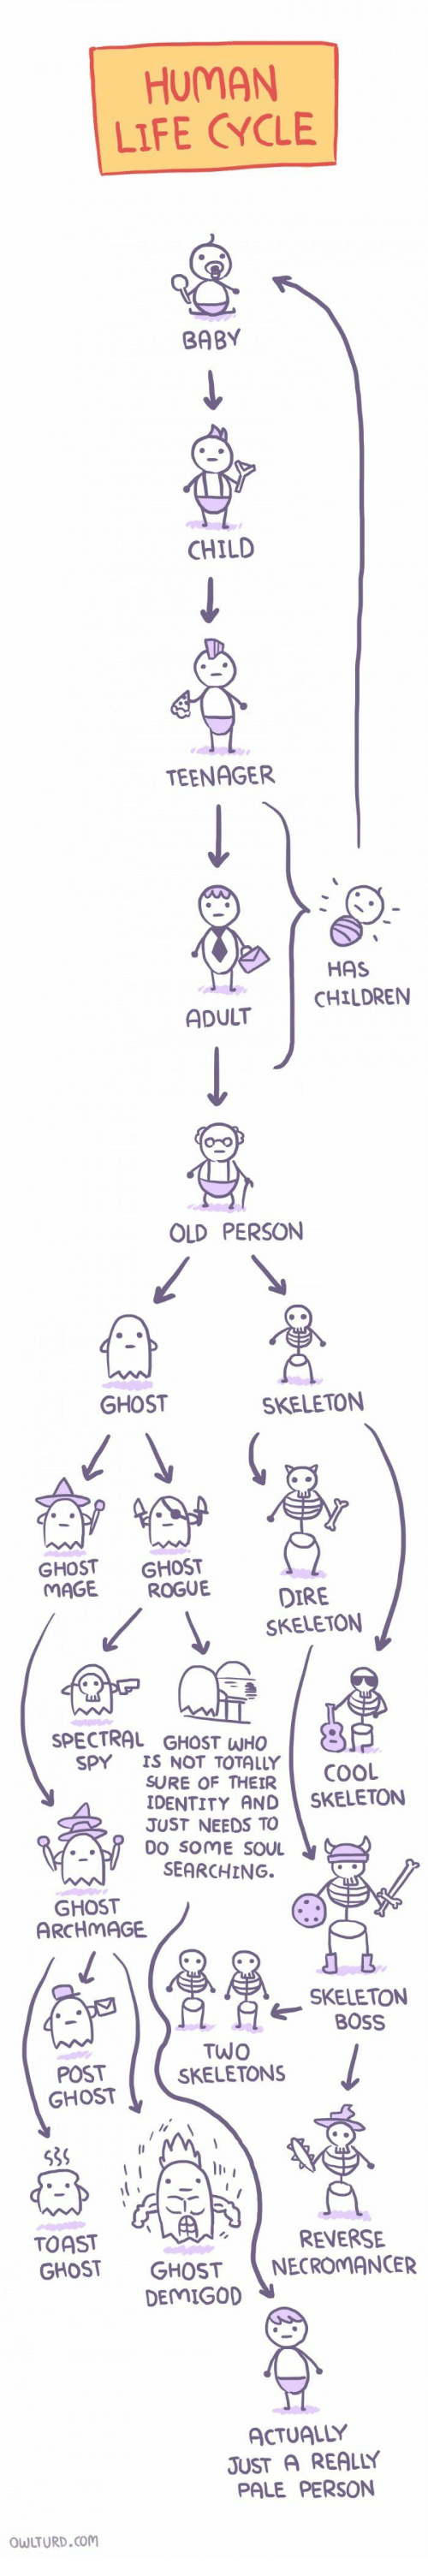 Human Life: HUMAN  LIFE CYCLE  BABY  CHILD  TEENAGER  HAS  CHILDRENN  ADULT  OLD PERSON  GHOST  SKELETON  GHOST GHOST  MAGE ROGUE  DIRE  SKELETON  SPECTRAL GHOST WHO  SPY IS NOT TOTALLY  SURE OF THEIR  COOL  DENTITY AND SKELETON  JUST NEEDS TO  DO SOME SOU  SEARCHING.  GHOST  ARCHMAGE  SKELETON  OSS  POST  GHOST  TWO  SKELETONS  la  539  TOAST  GHOST GHOSTNECROMANCER  REVERSE  DEMIGO  ACTUALLY  JUST A REALLY  PALE PERSON  WLTURD.com